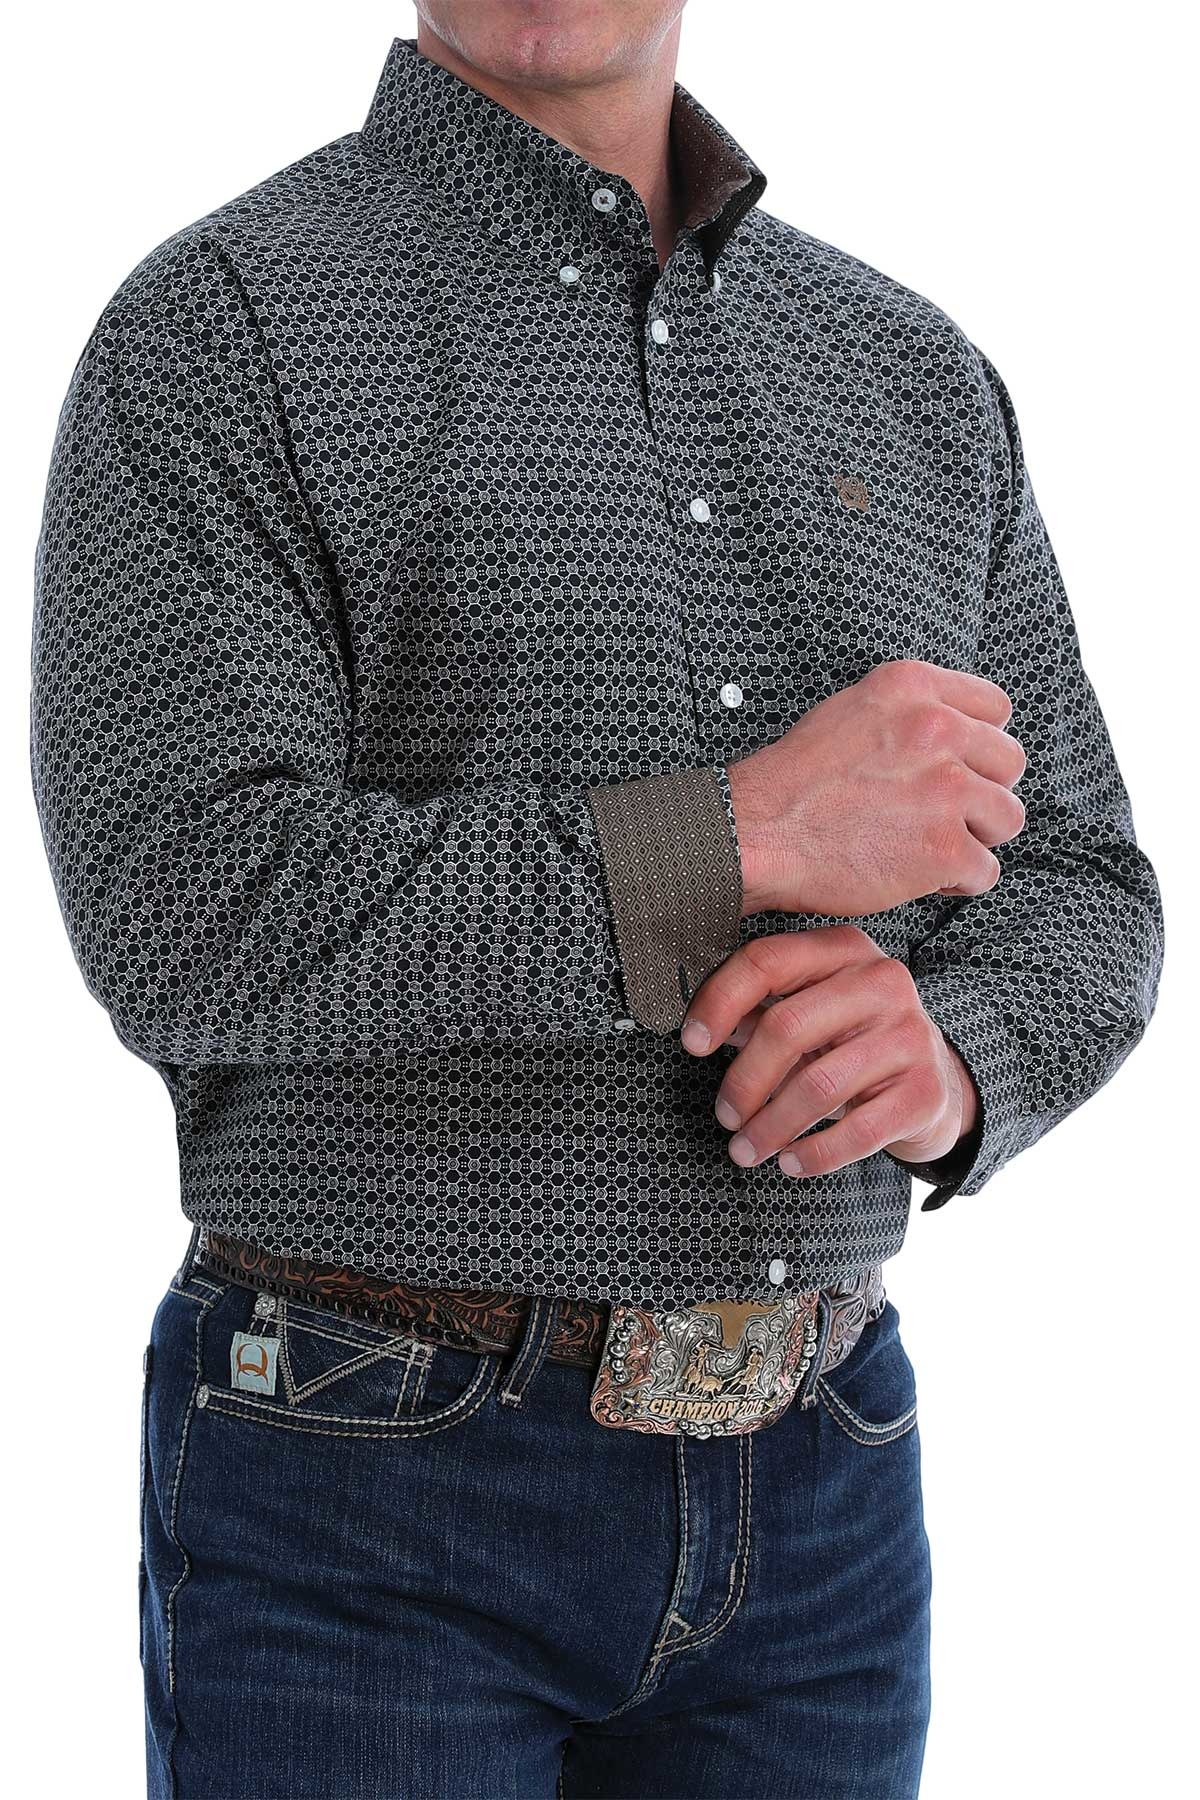 CINCH LONG SLEEVED SHIRT BLK PRNT